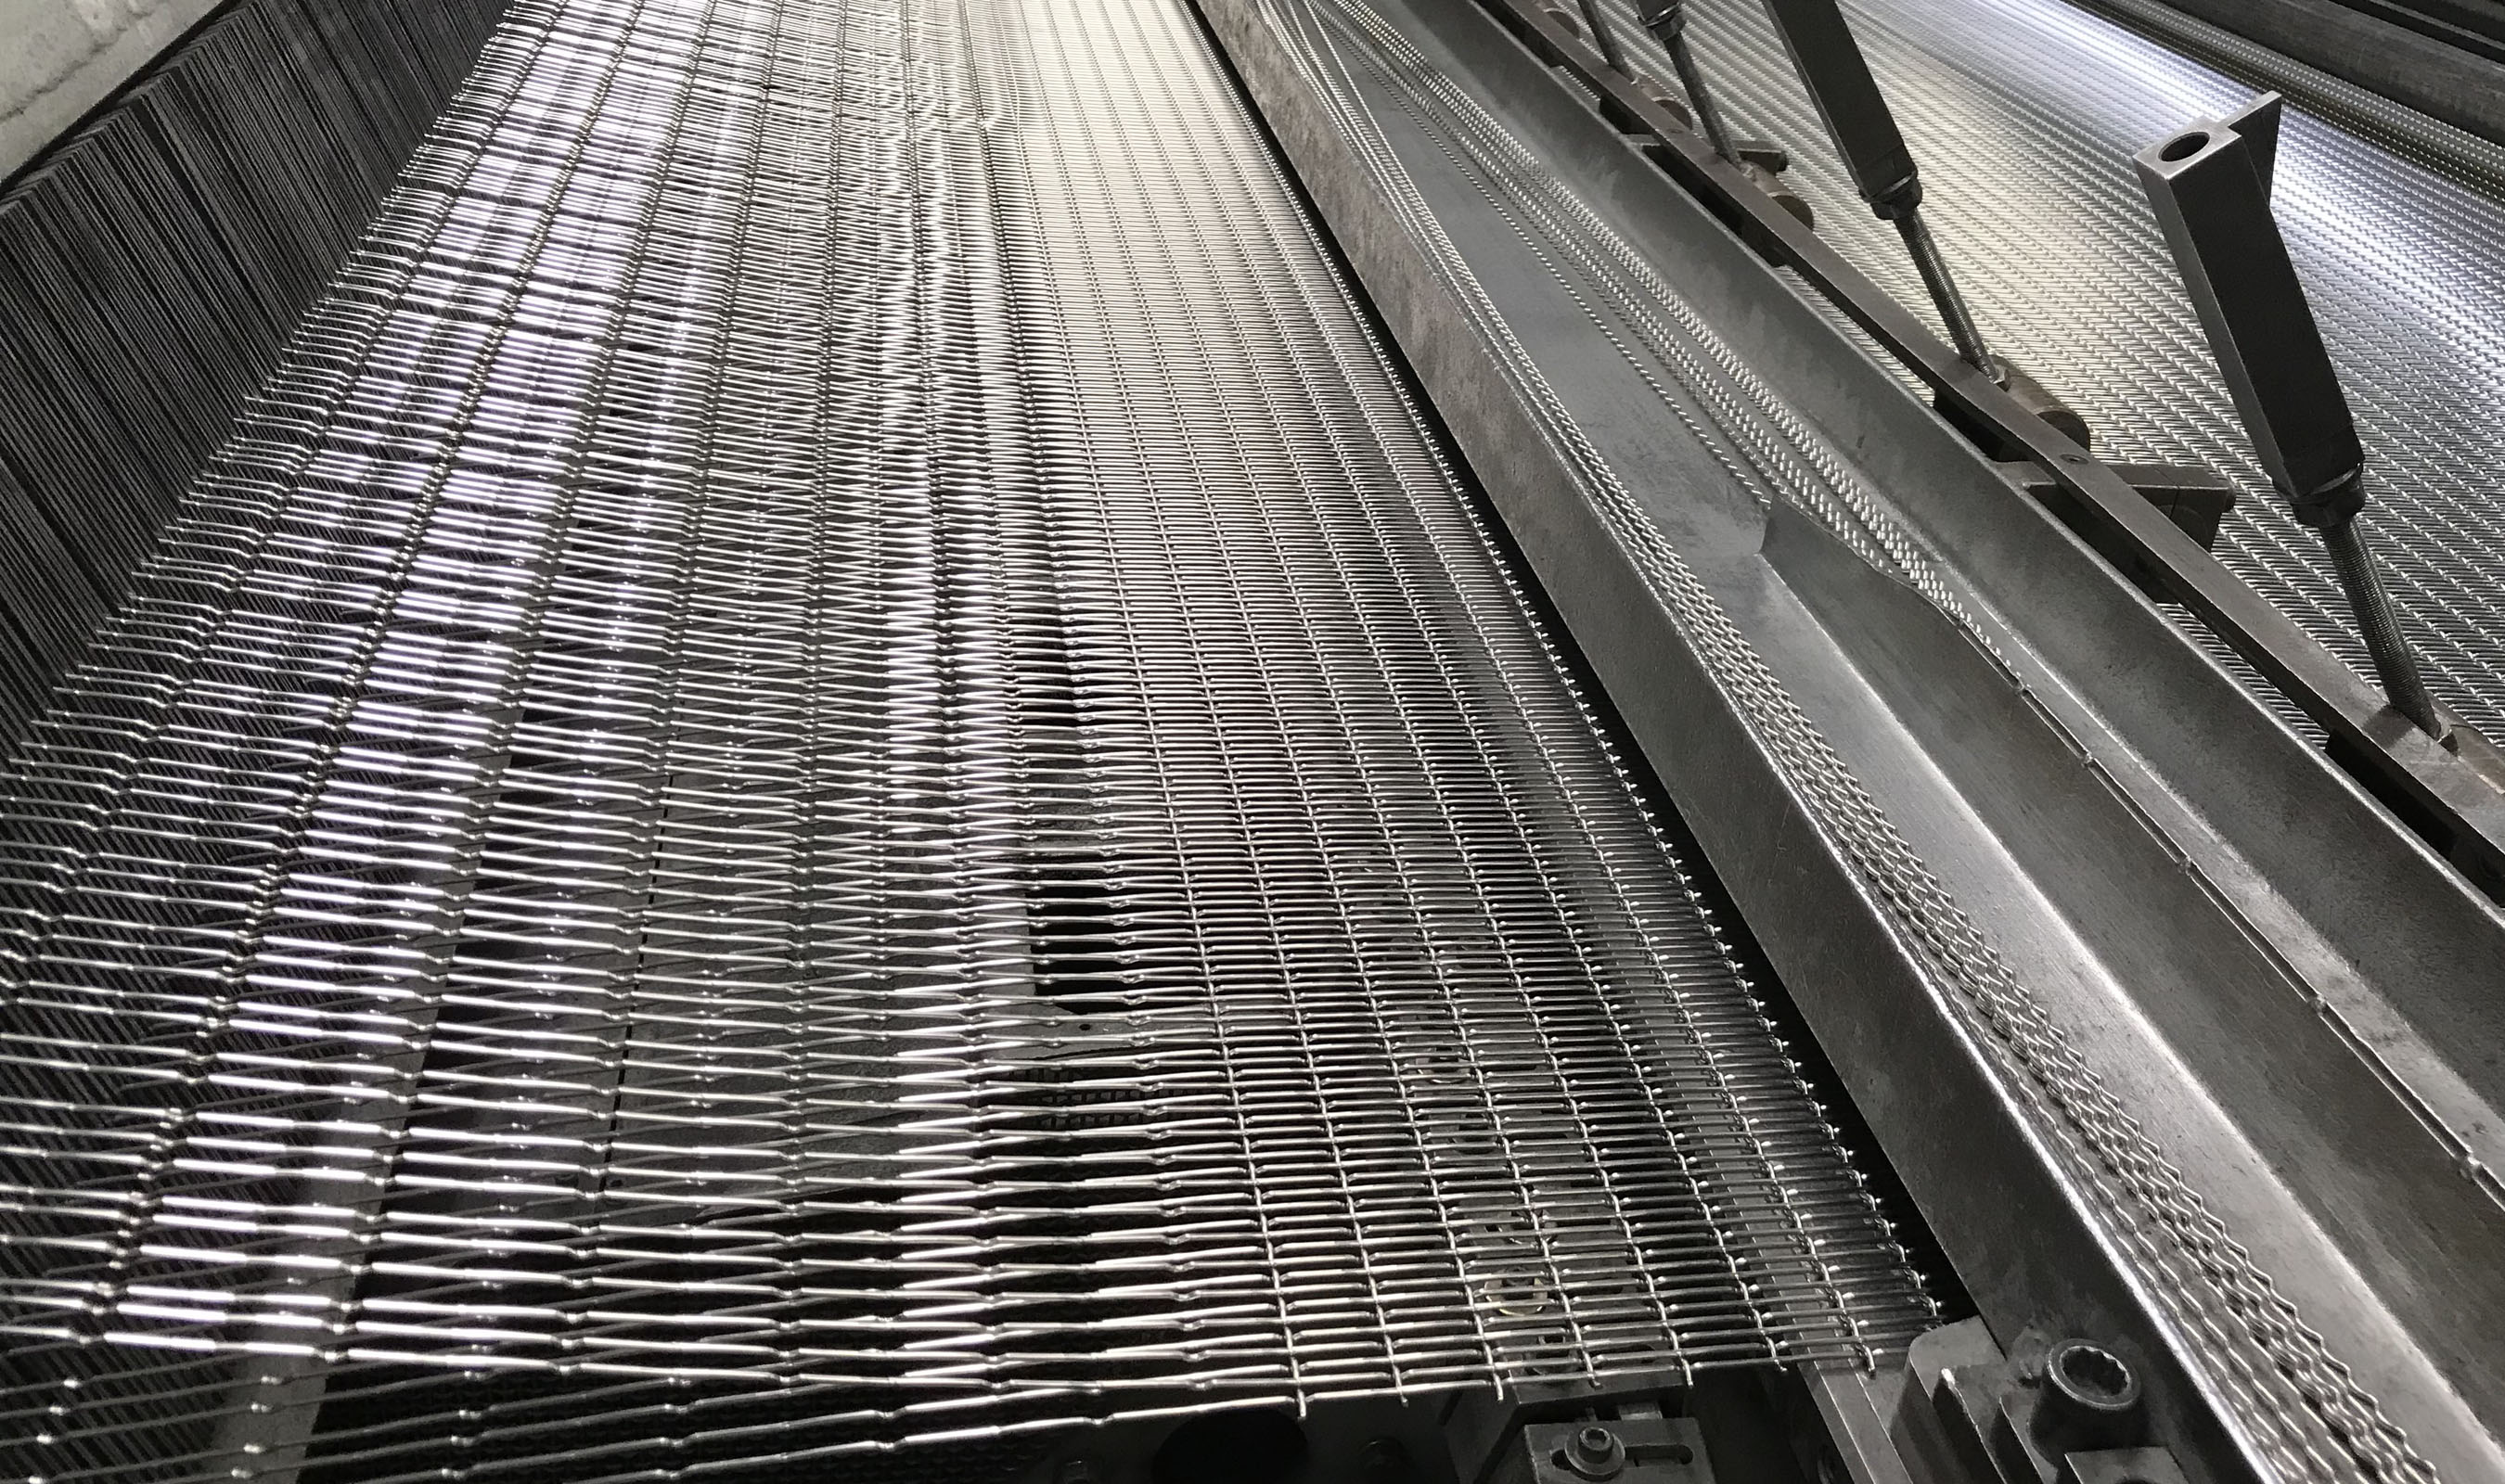 FPZ-31 Stainless Steel woven wire mesh on the loom